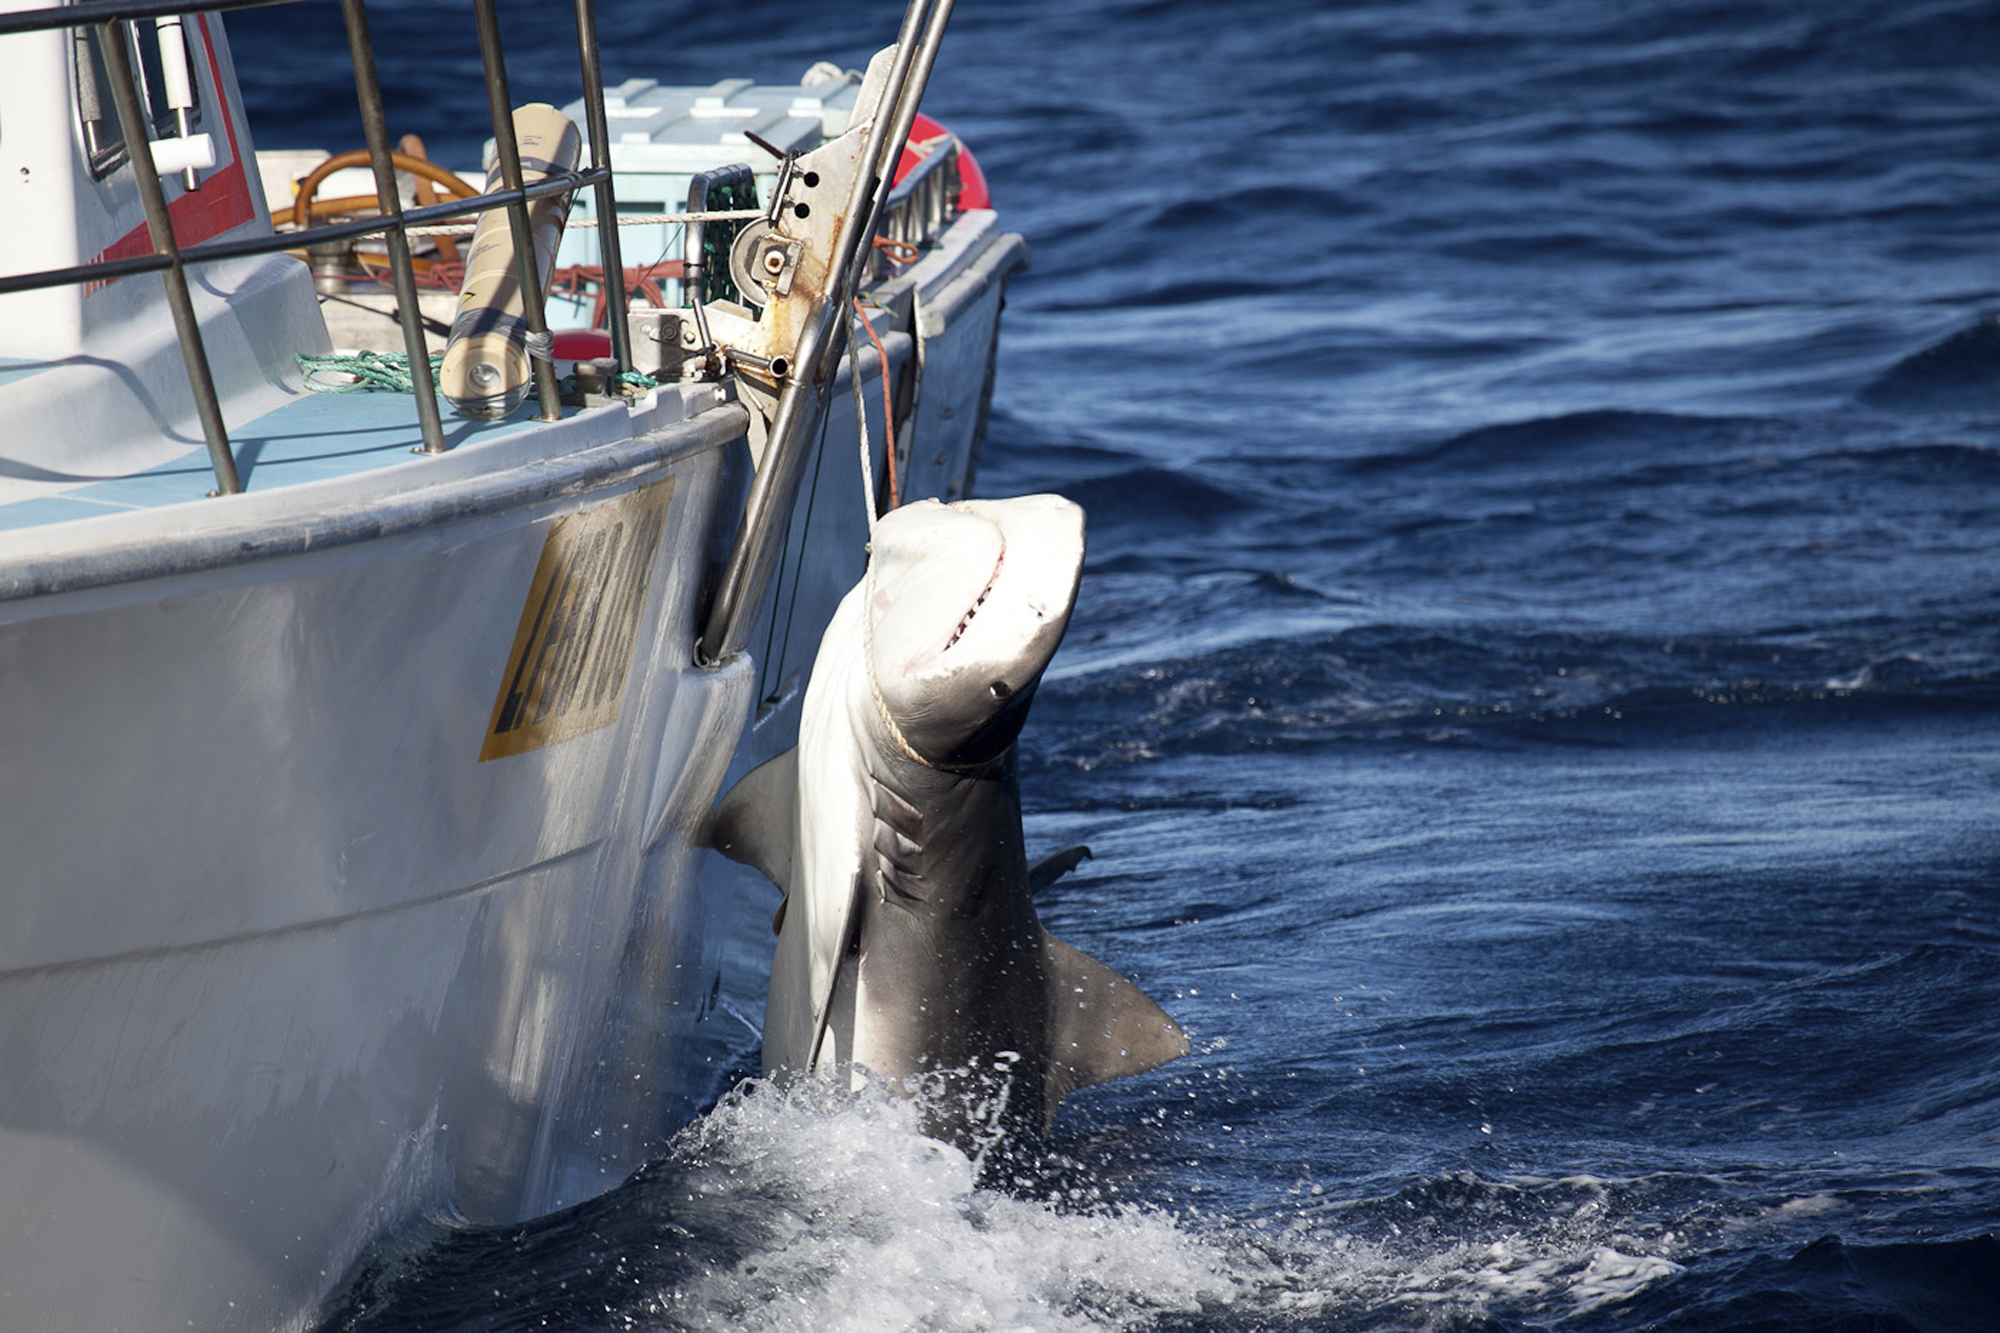 shark culling in australia Western australia's state parliament is due back on february 18, and premiere  colin barnett's shark cull is sure to dominate proceedings he.